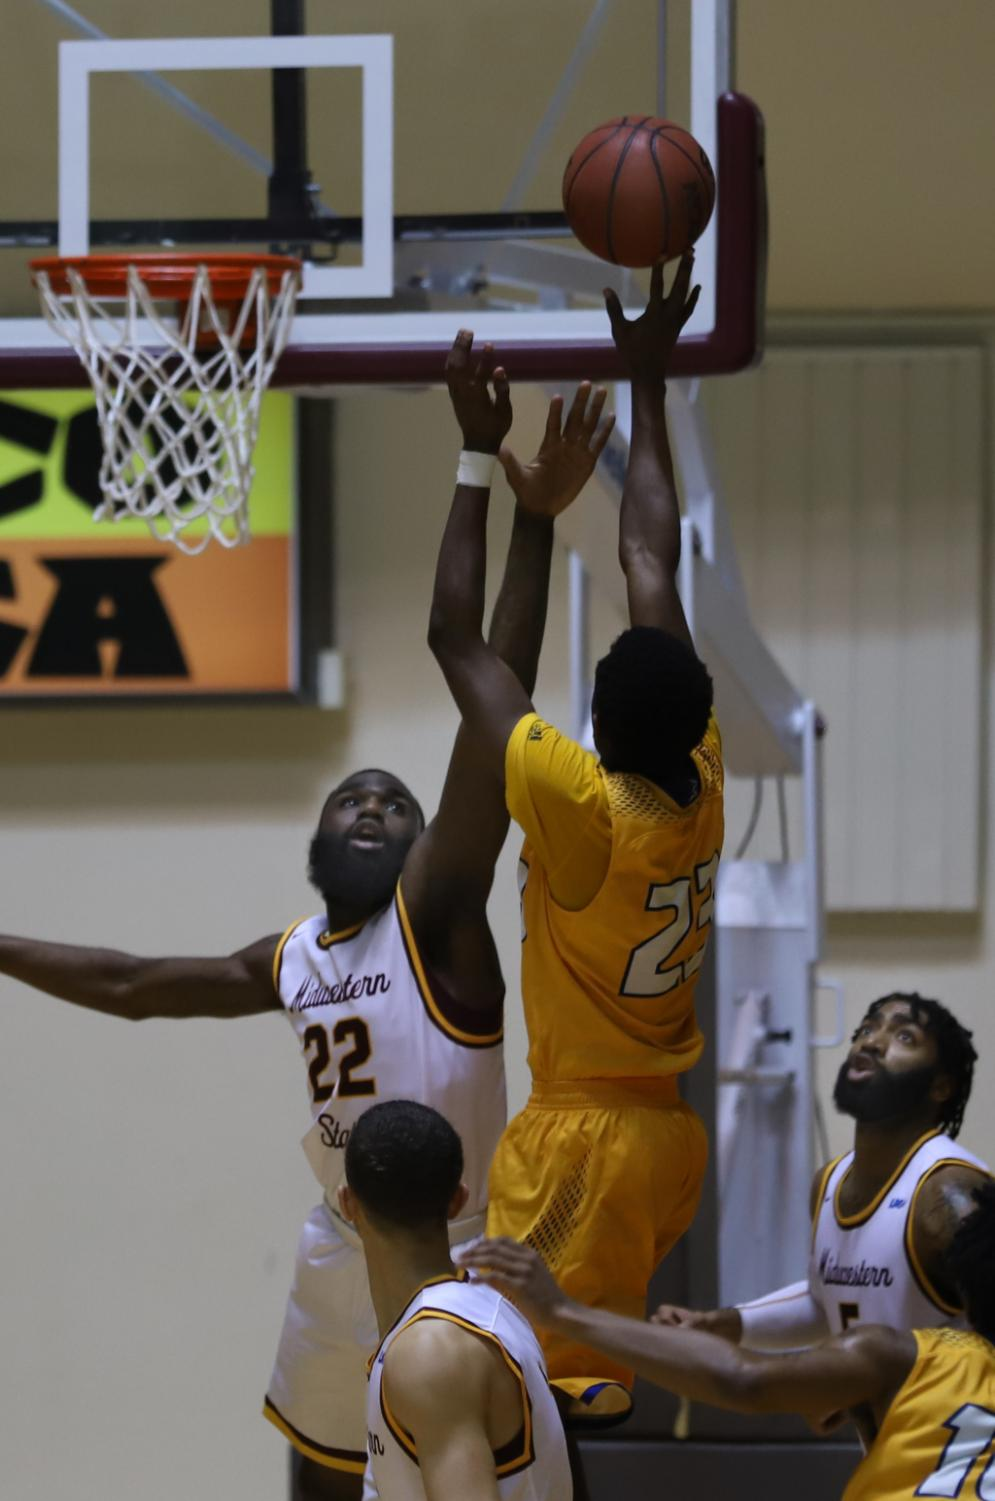 Gilbert+Thomas%2C+general+studies+junior+contests+last-second+shot+from+Texas+A%26M+Kingsville+player.+Photo+by+Sharome+Burton.+March+2.